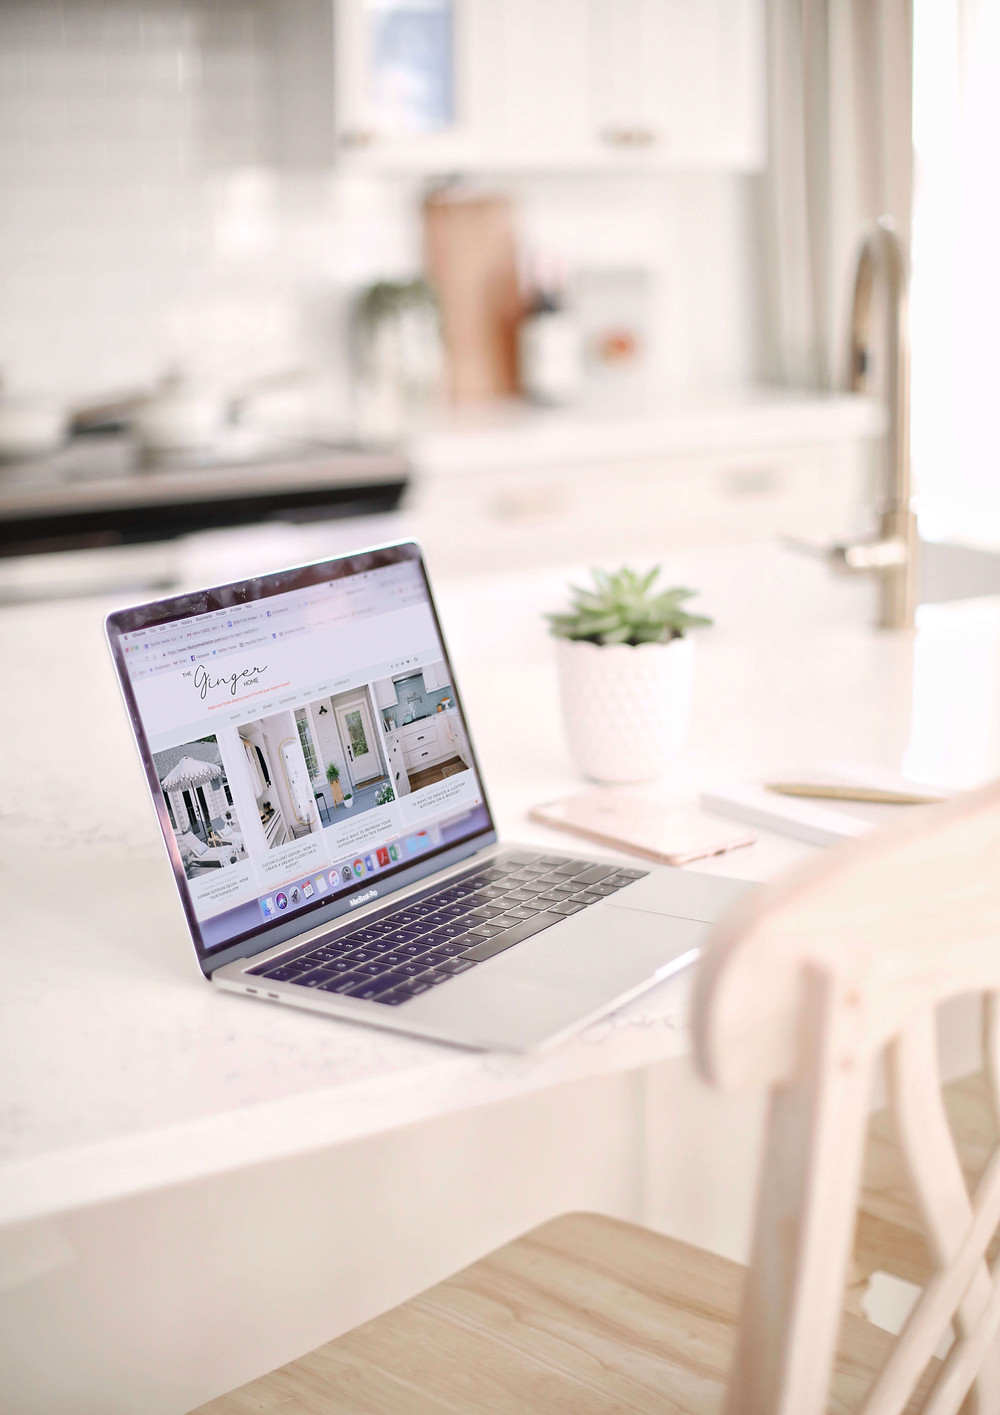 How to get followers on Instagram | Amanda, from the Ginger Home, shares how she gained 10K followers on Instagram in just 6 months.